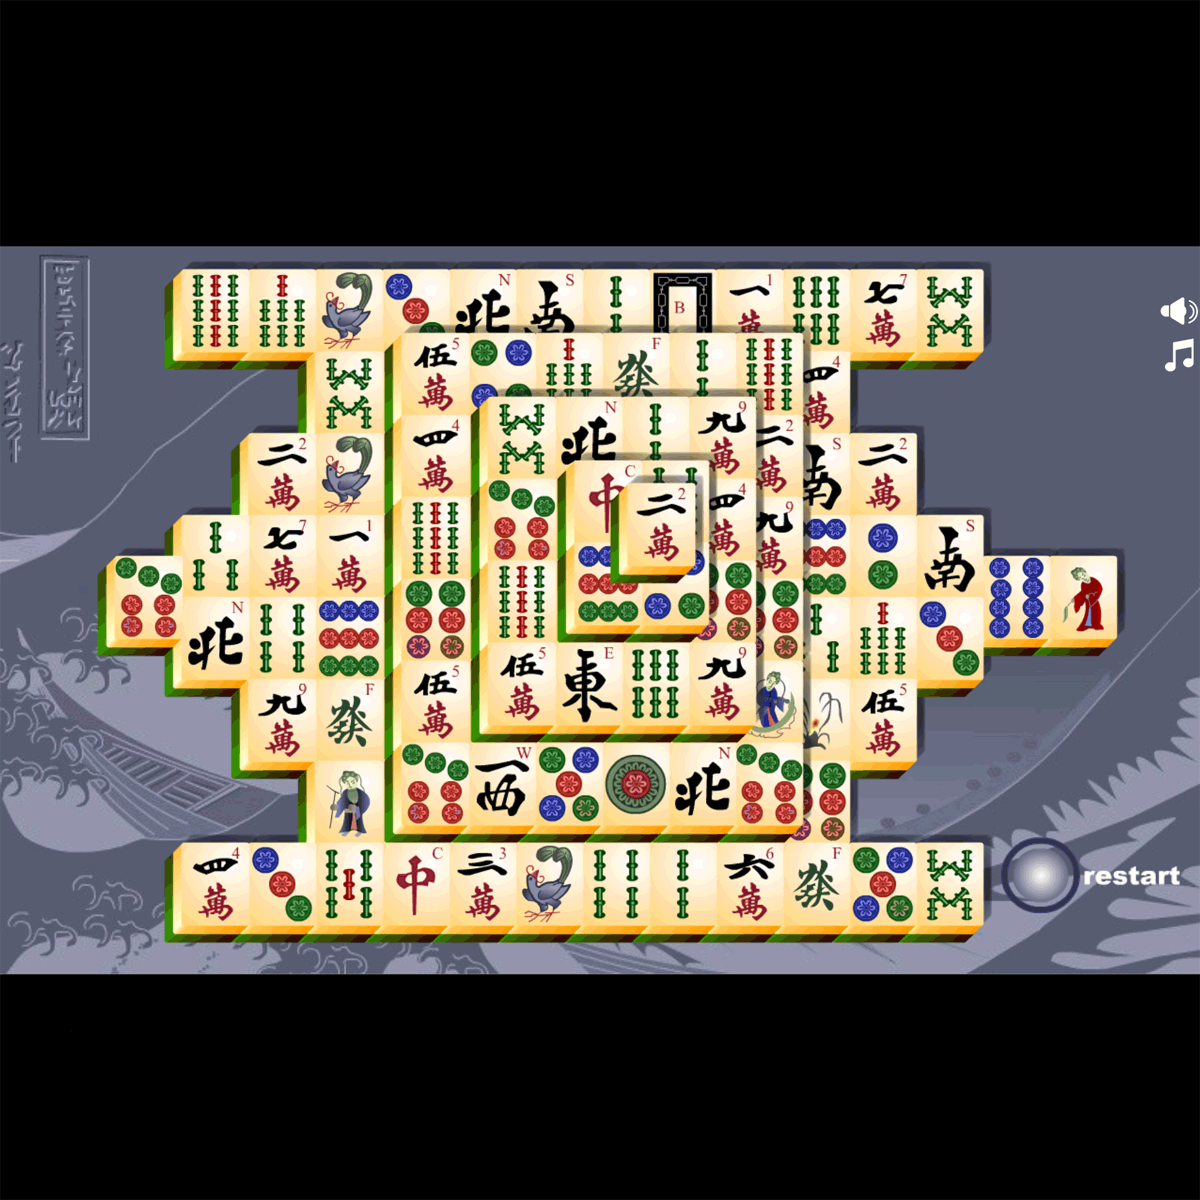 Mahjong Titans | Play instantly on FreeGames org